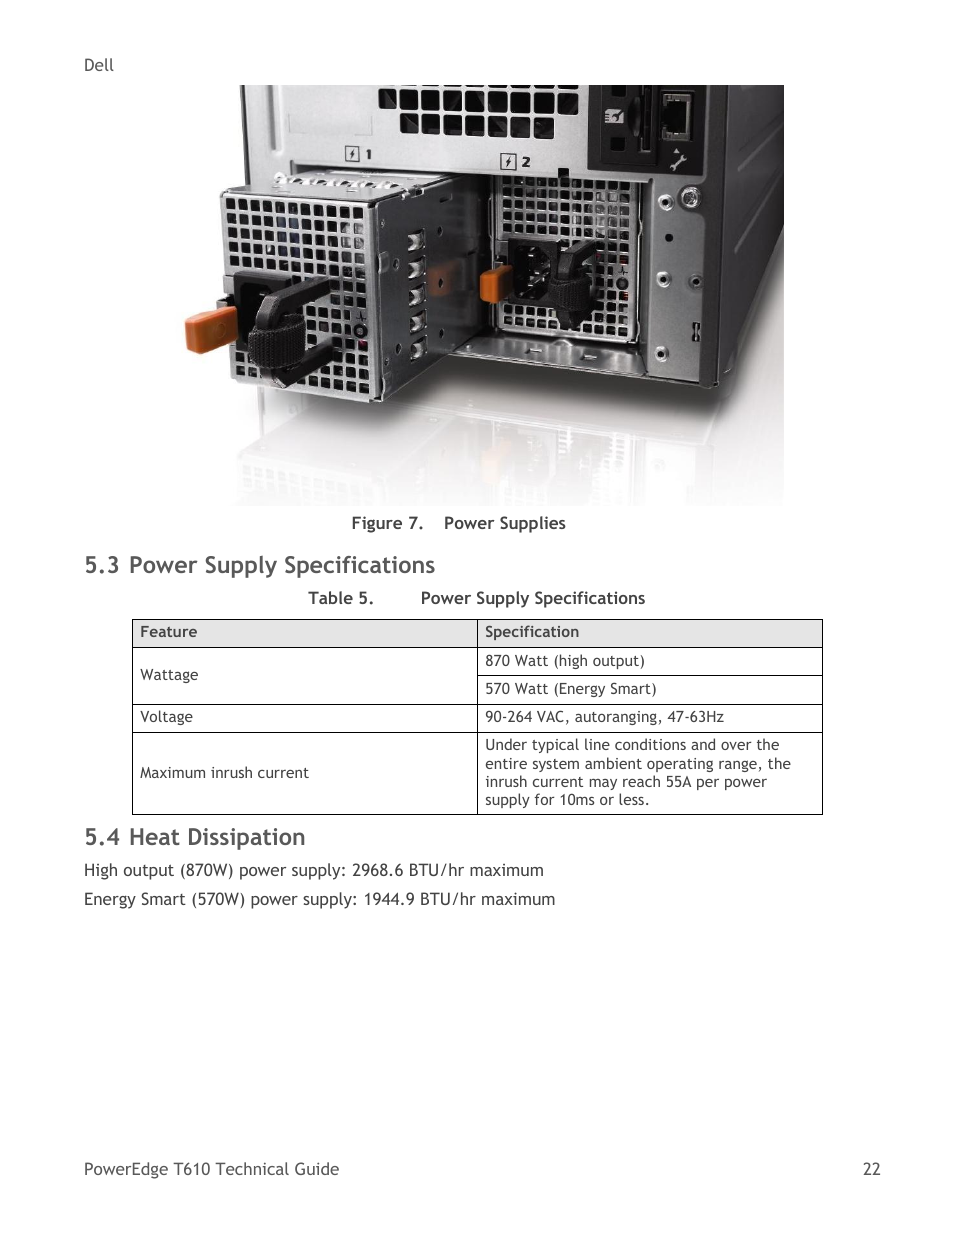 Power supply specifications, Heat dissipation, Table 5 | Dell